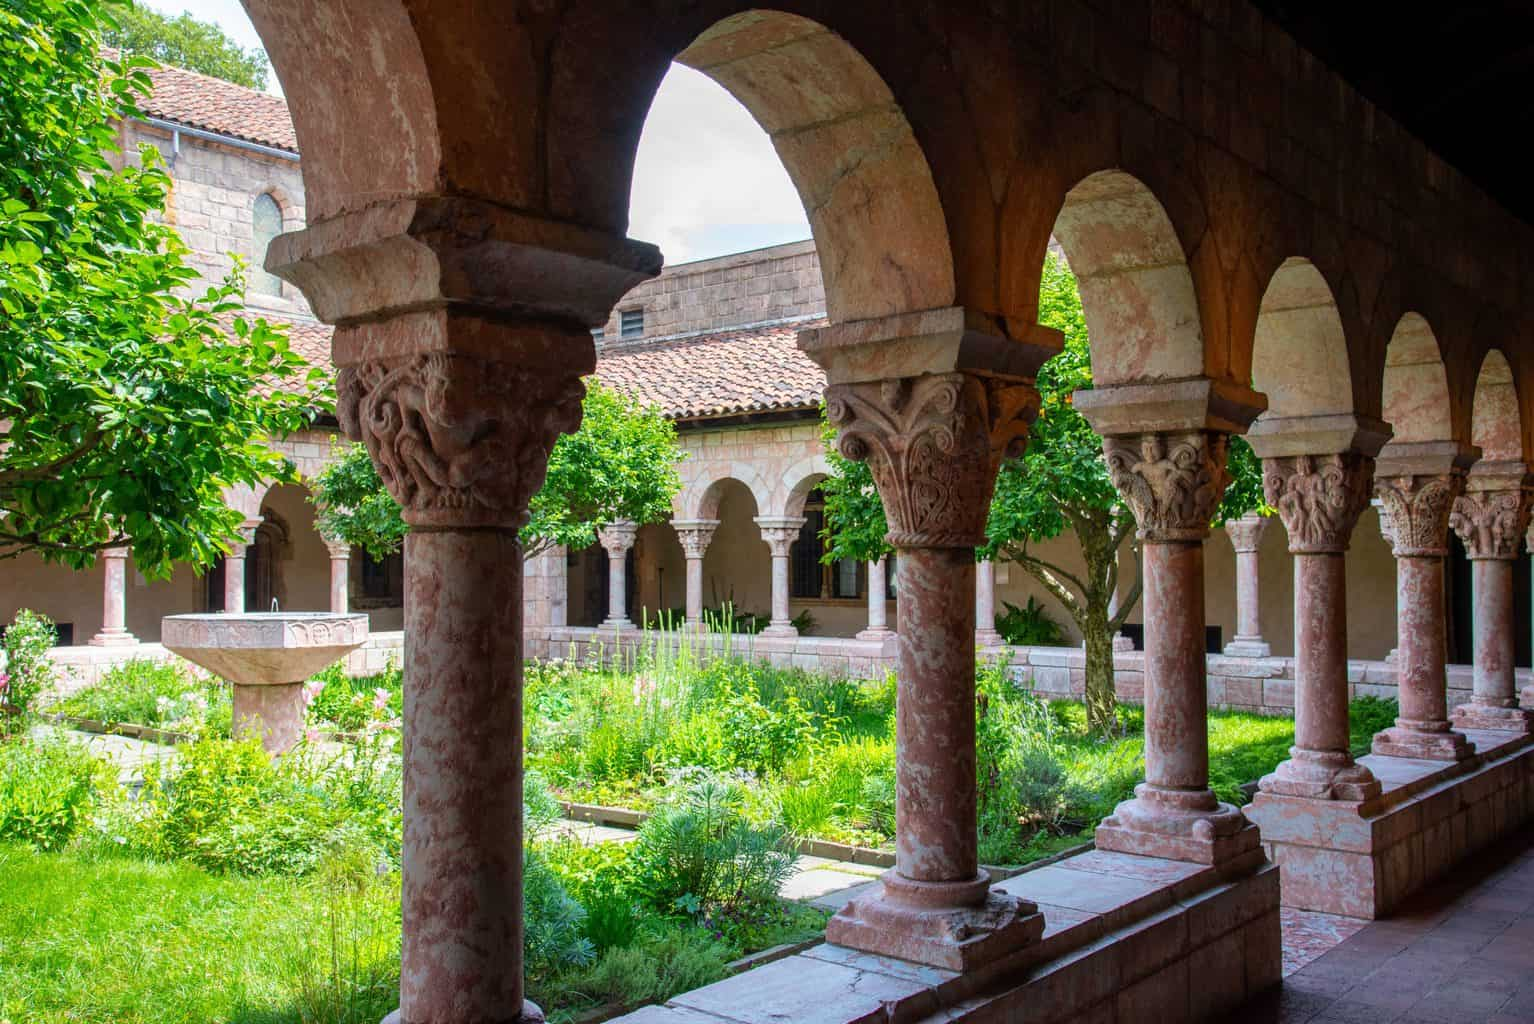 Cloister with areches and columns in NYC